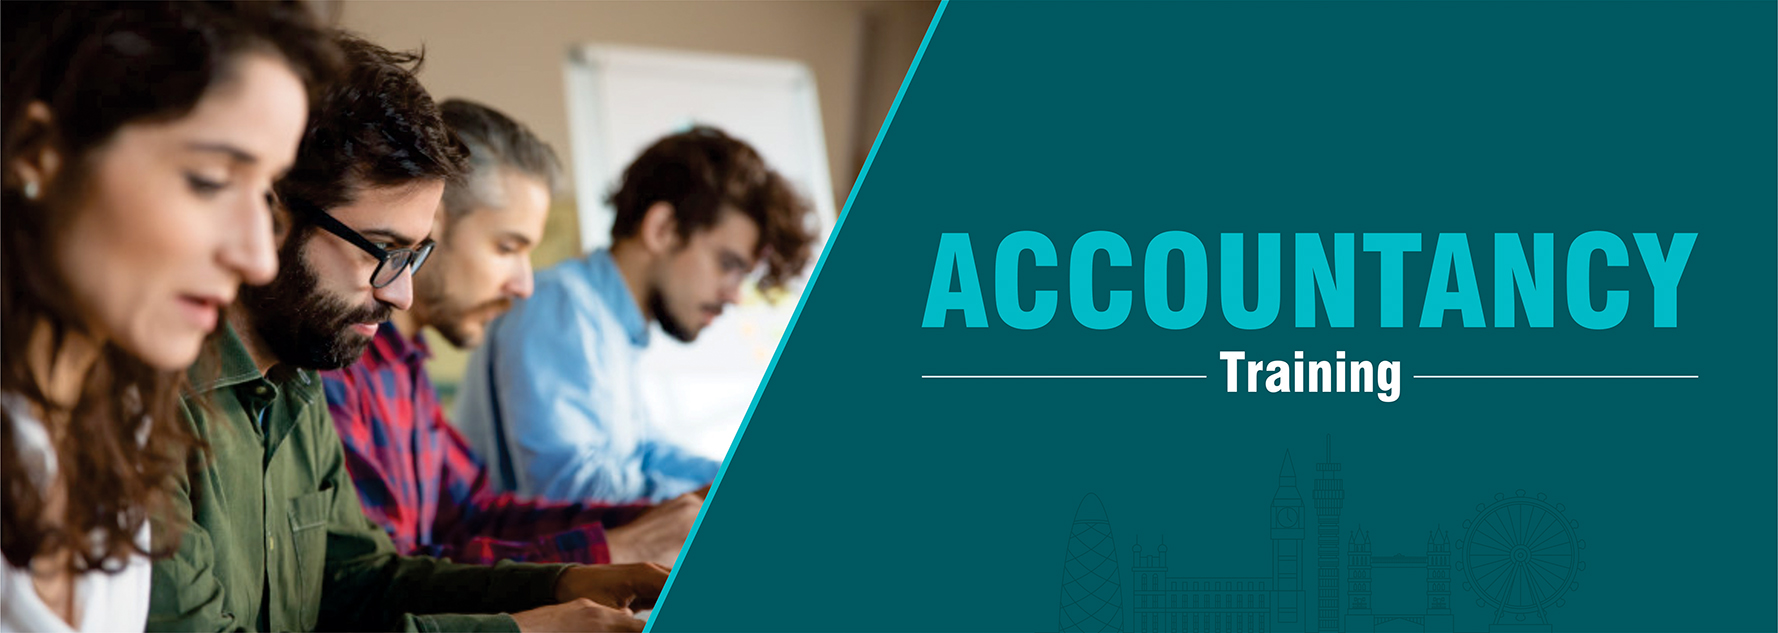 accountancy-training